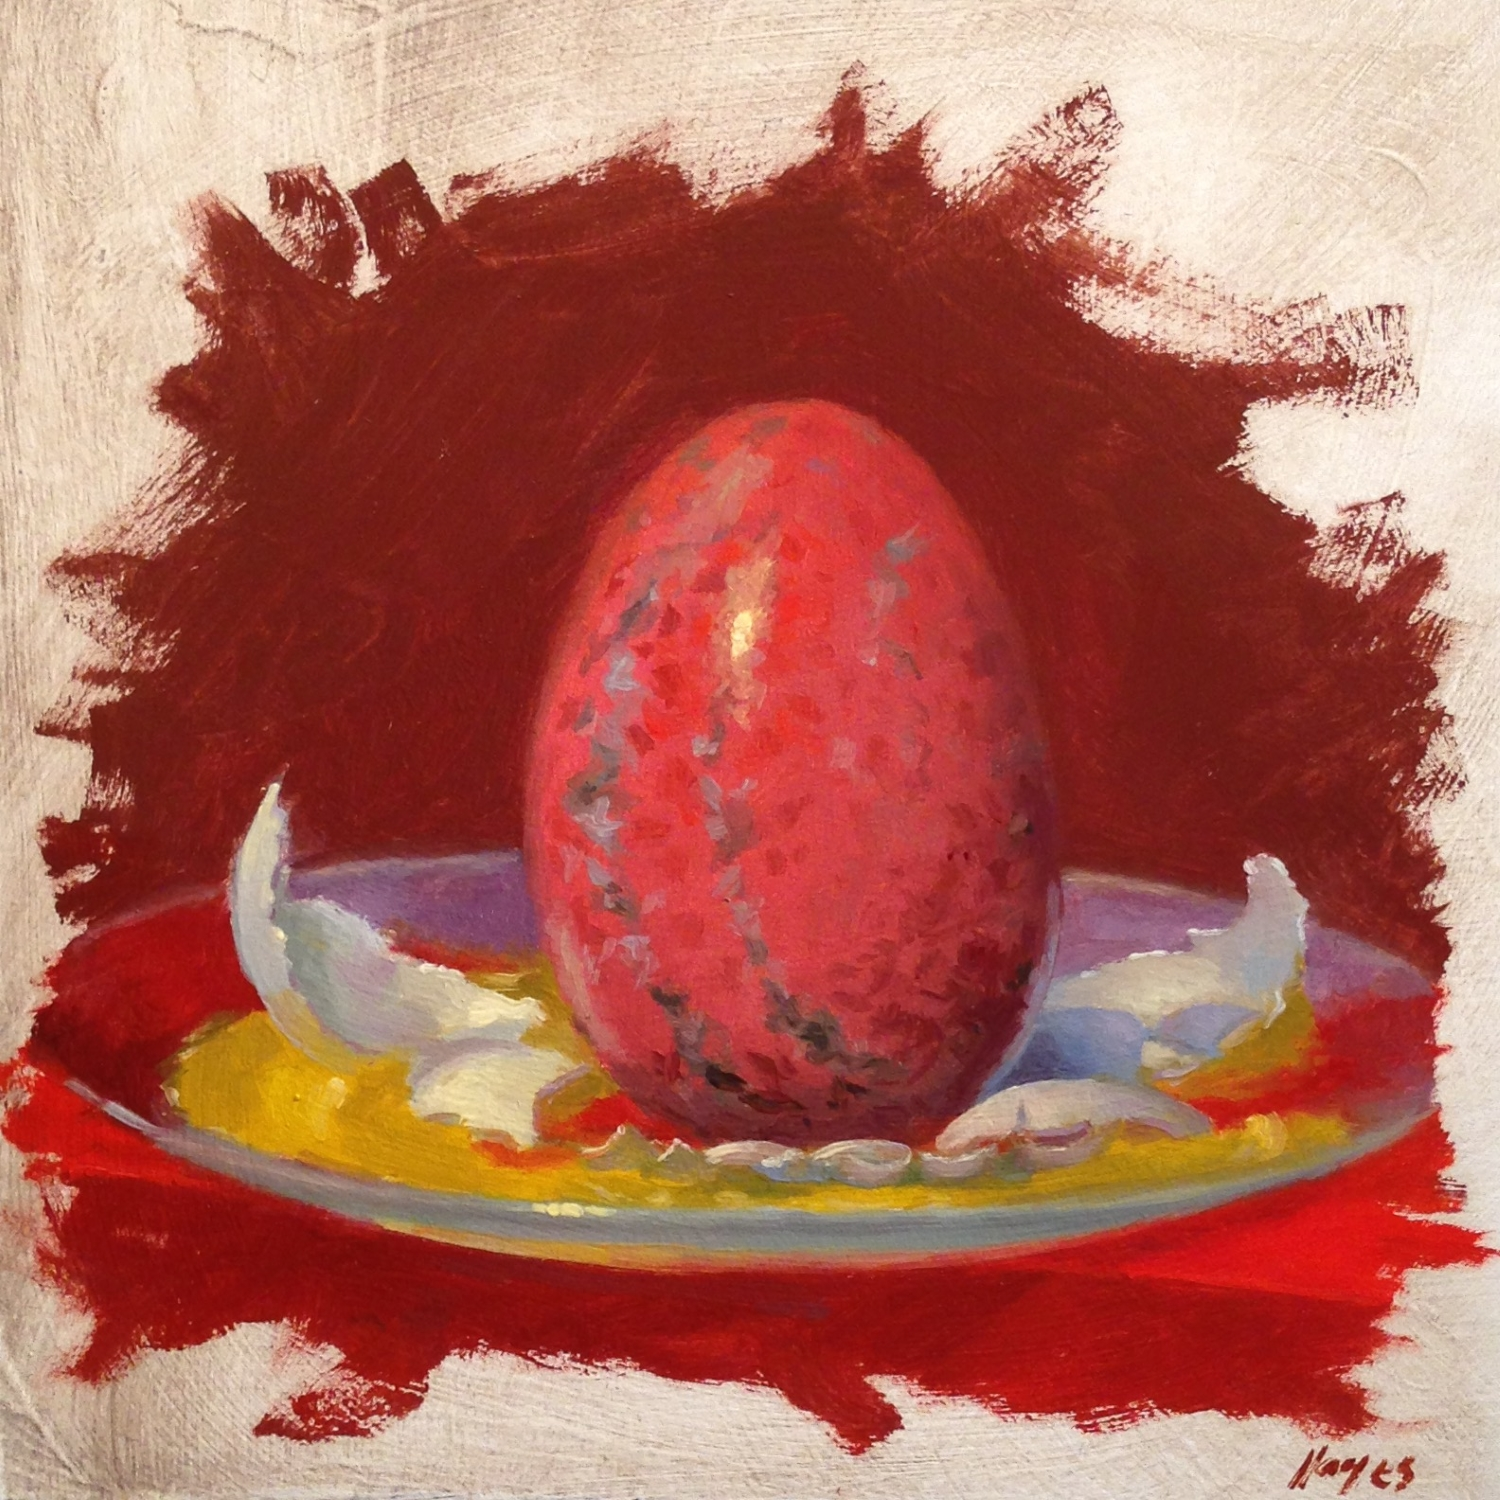 Jeffrey Hayes: Still Life Paintings: Oil Painting: Seven Deadly Sins: Wrath